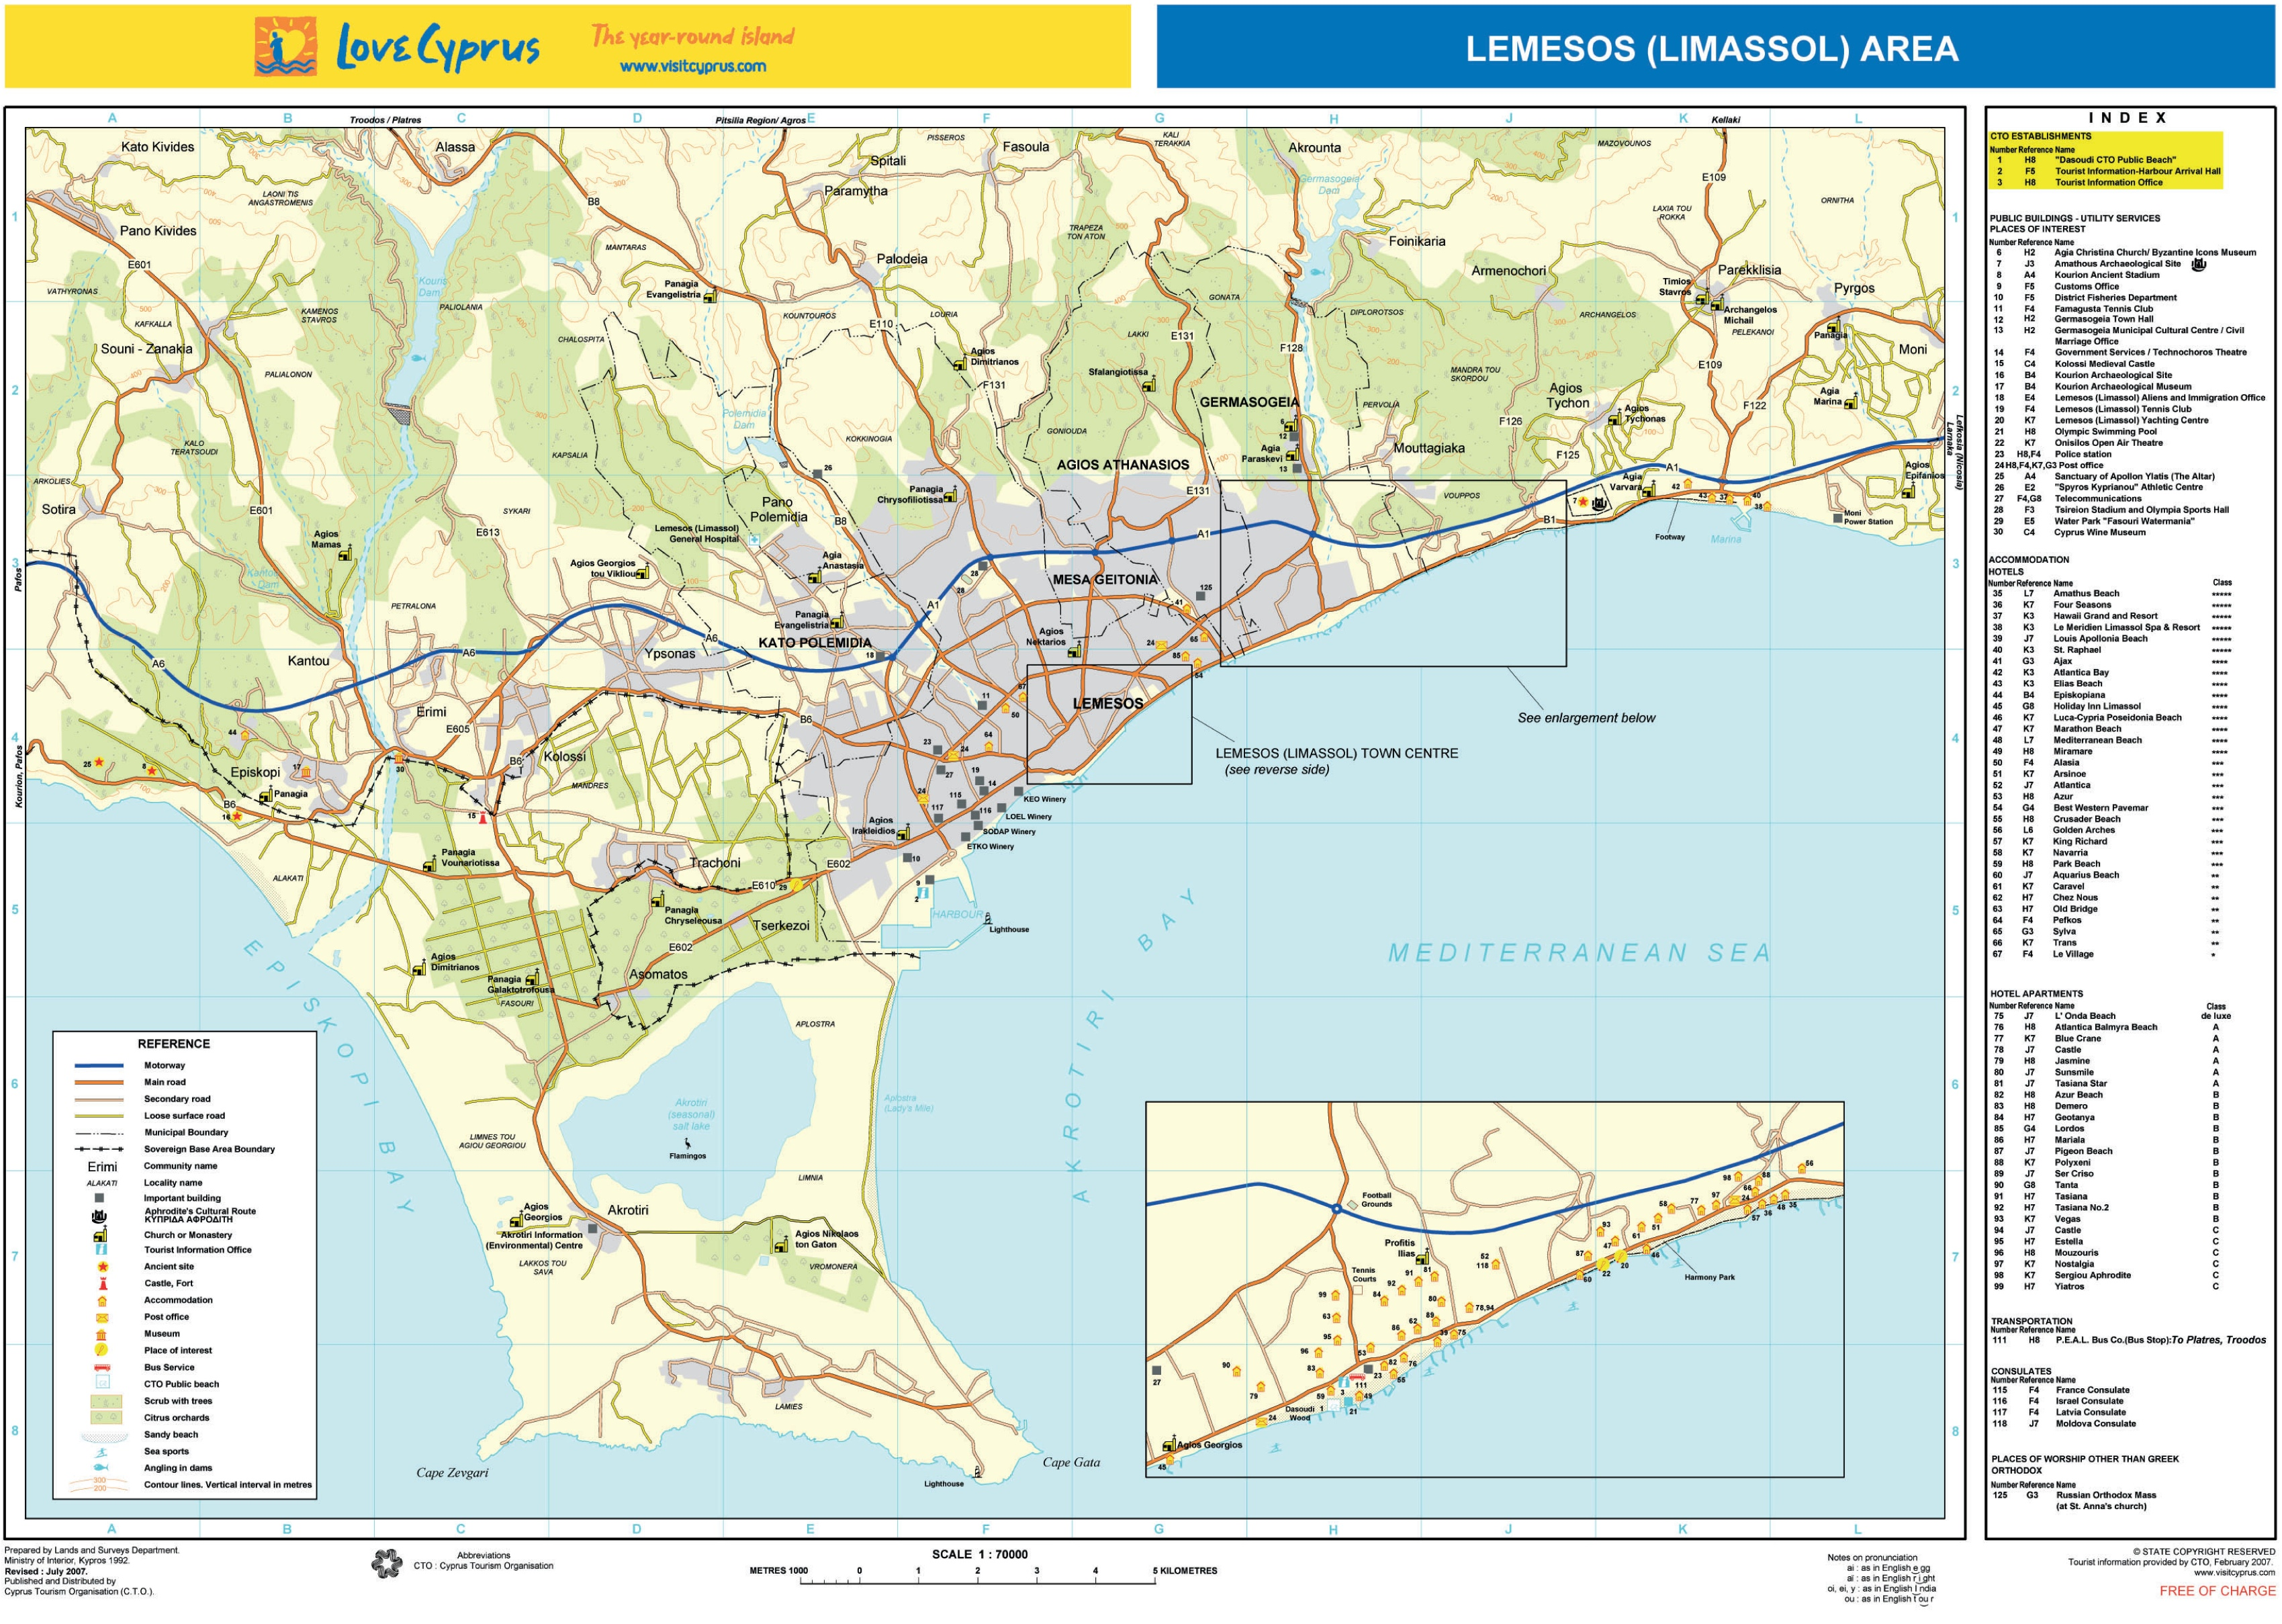 Limassol area tourist map limassol area tourist map gumiabroncs Images